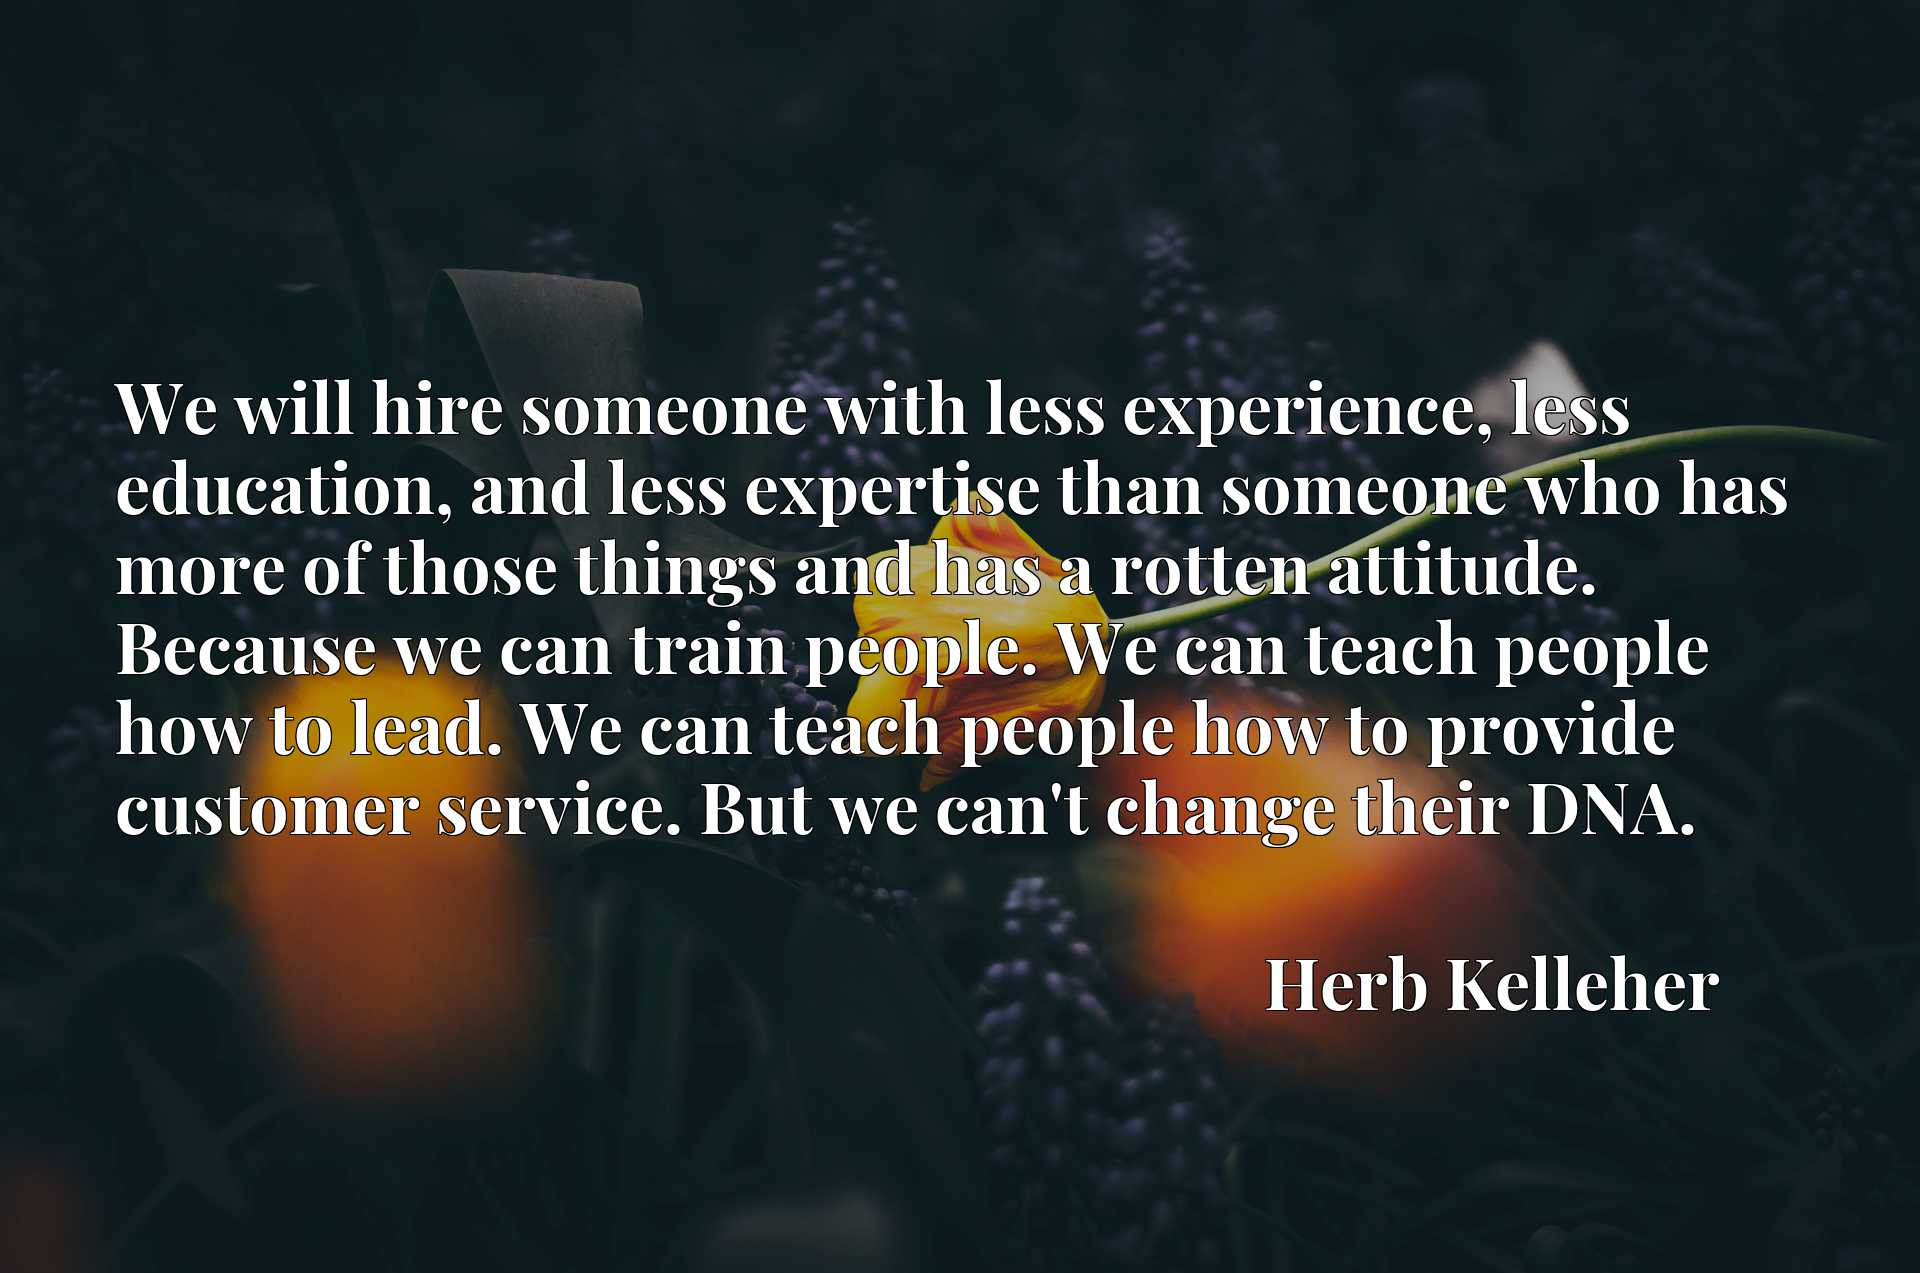 We will hire someone with less experience, less education, and less expertise than someone who has more of those things and has a rotten attitude. Because we can train people. We can teach people how to lead. We can teach people how to provide customer service. But we can't change their DNA.